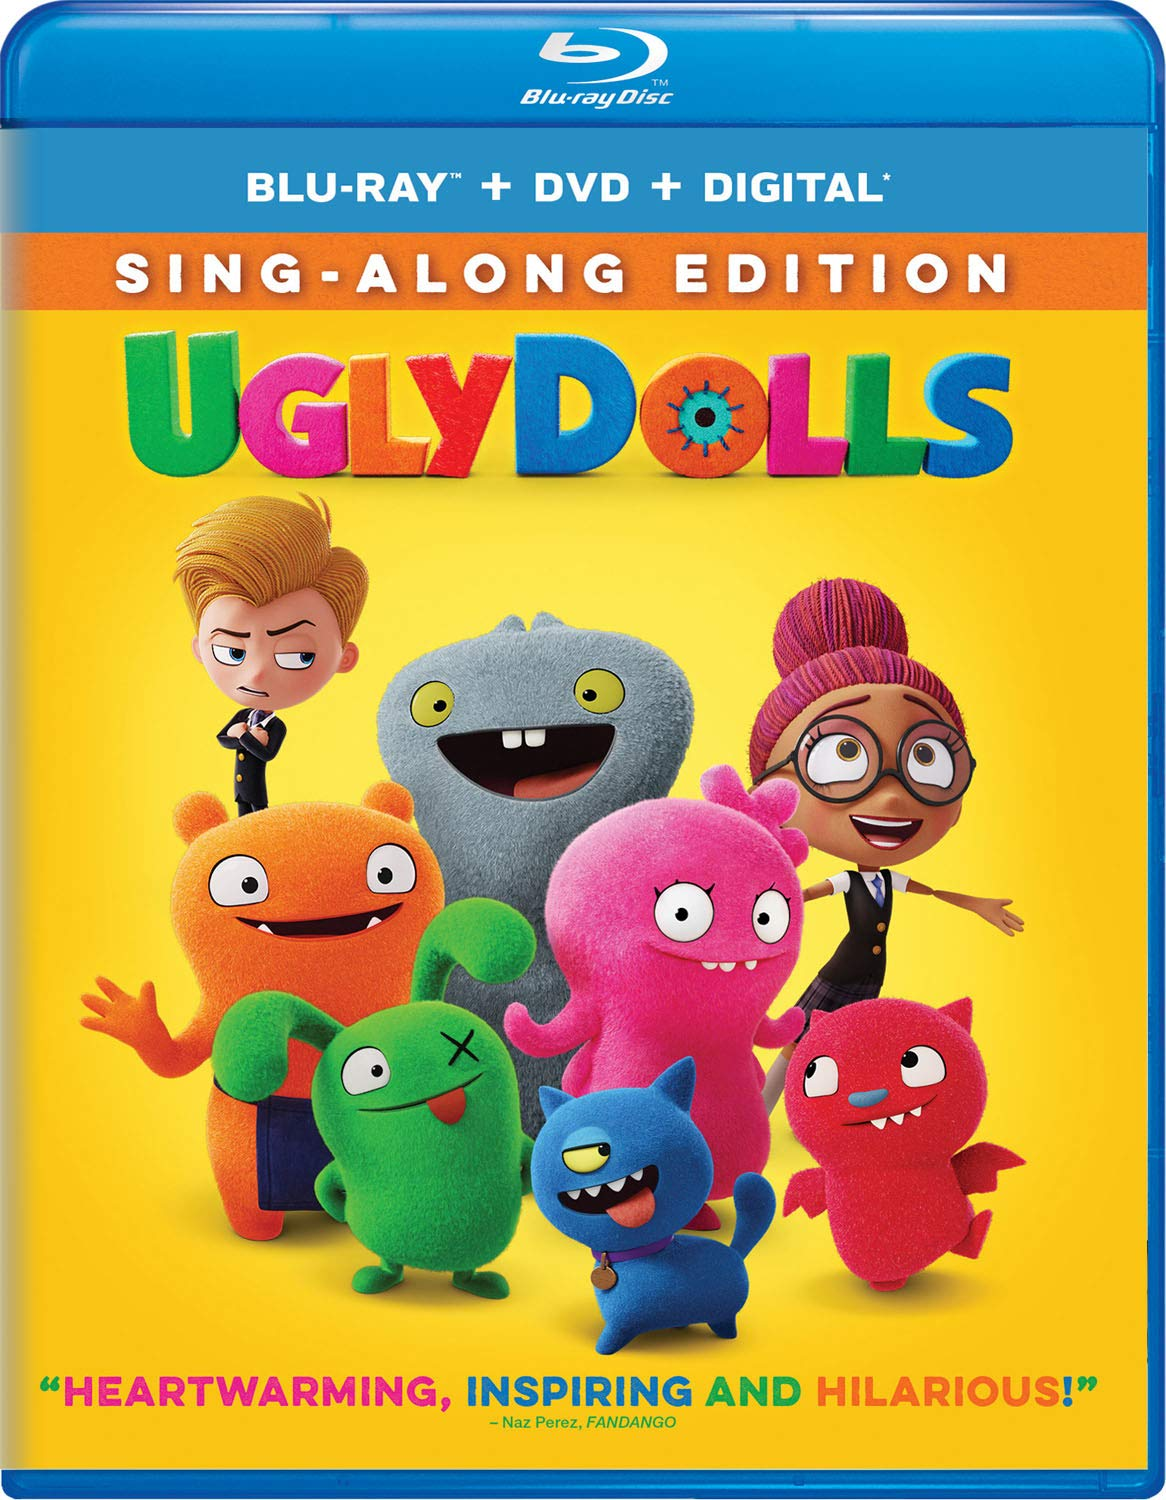 UglyDolls Blu-ray Cover